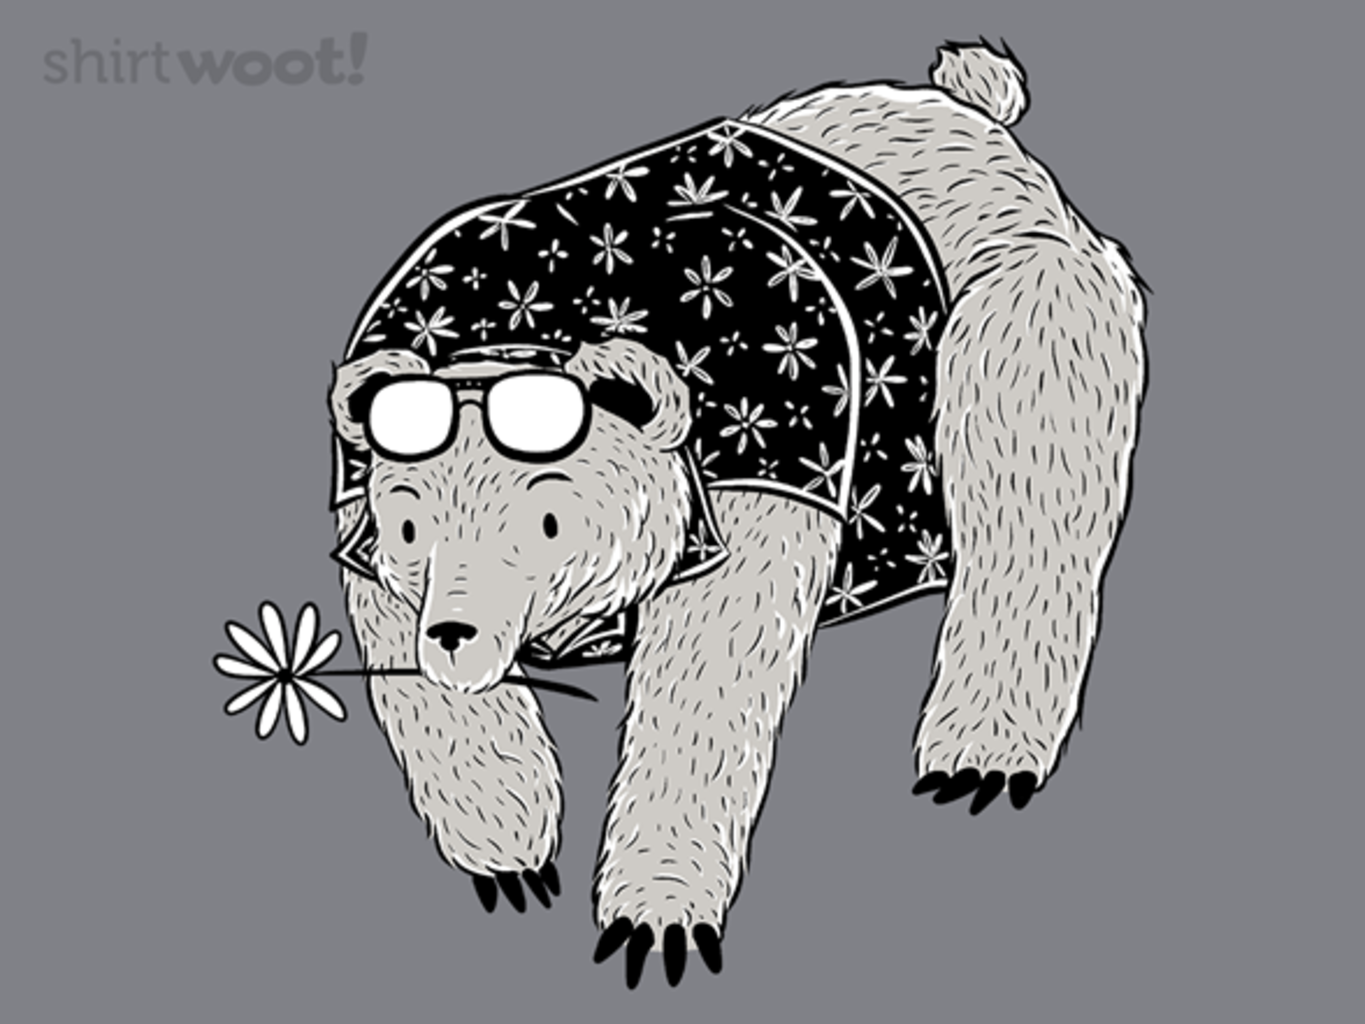 Woot!: Bear Goes to Florida